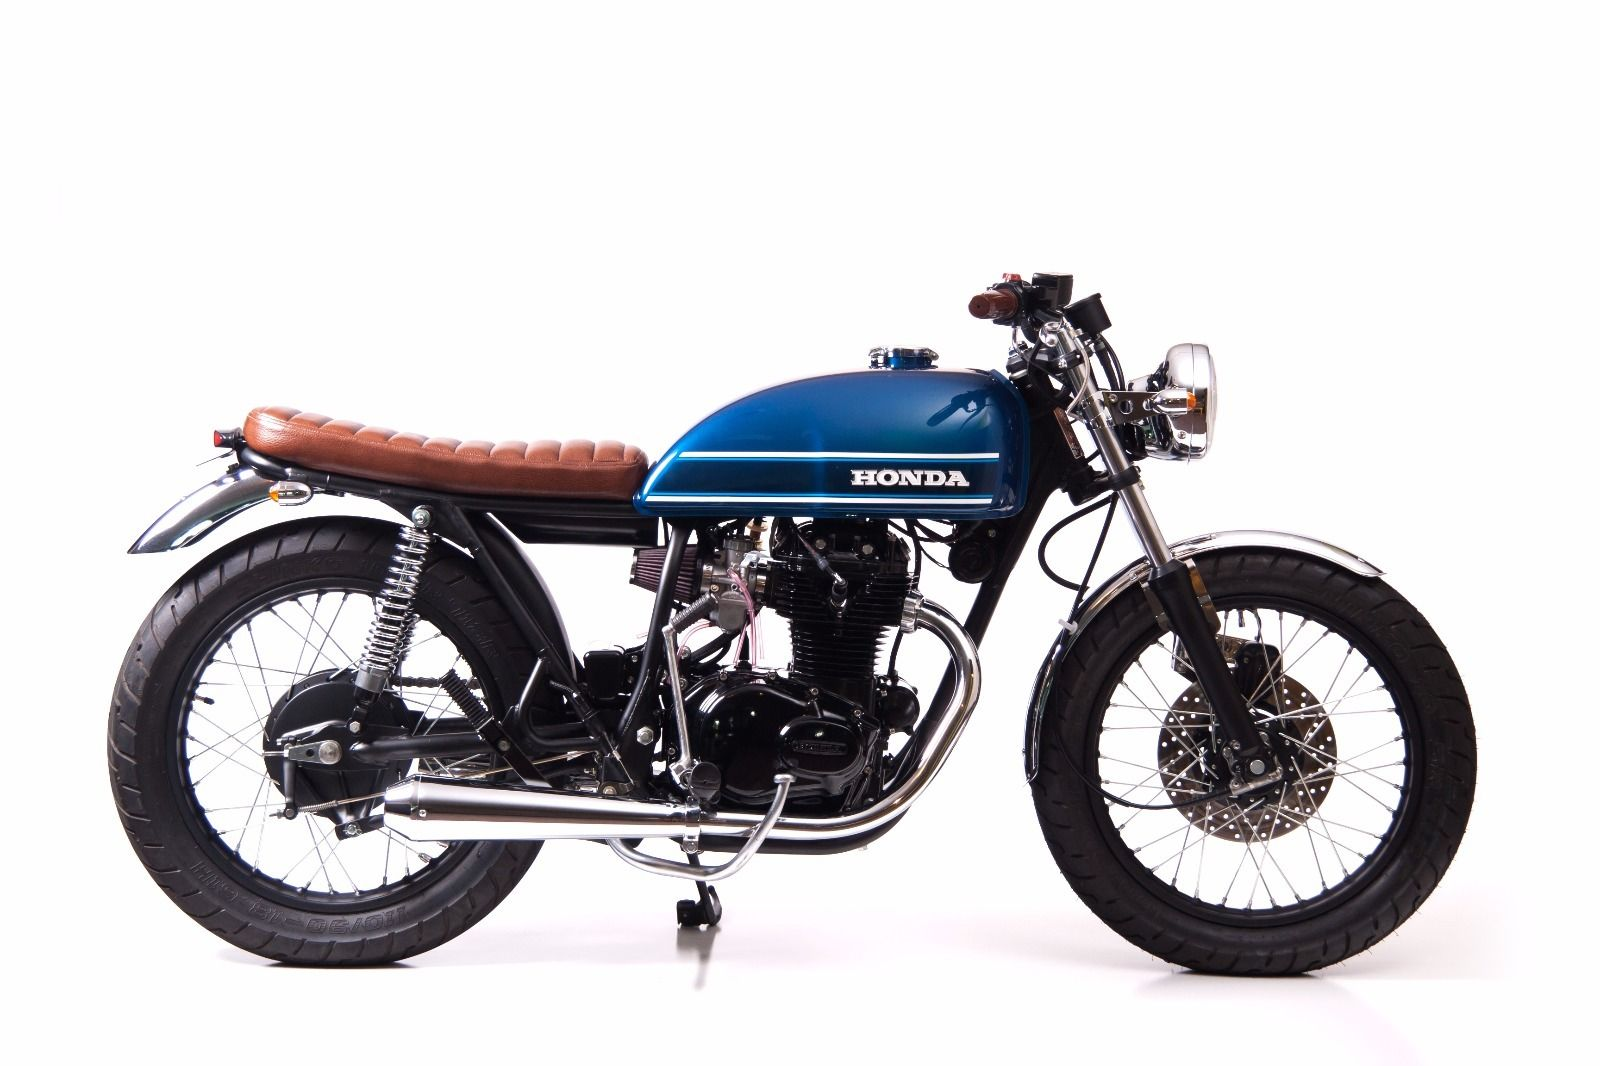 hight resolution of  cafe racer for sale near me honda cx500 for sale 190 1982 honda cx500 turbo for